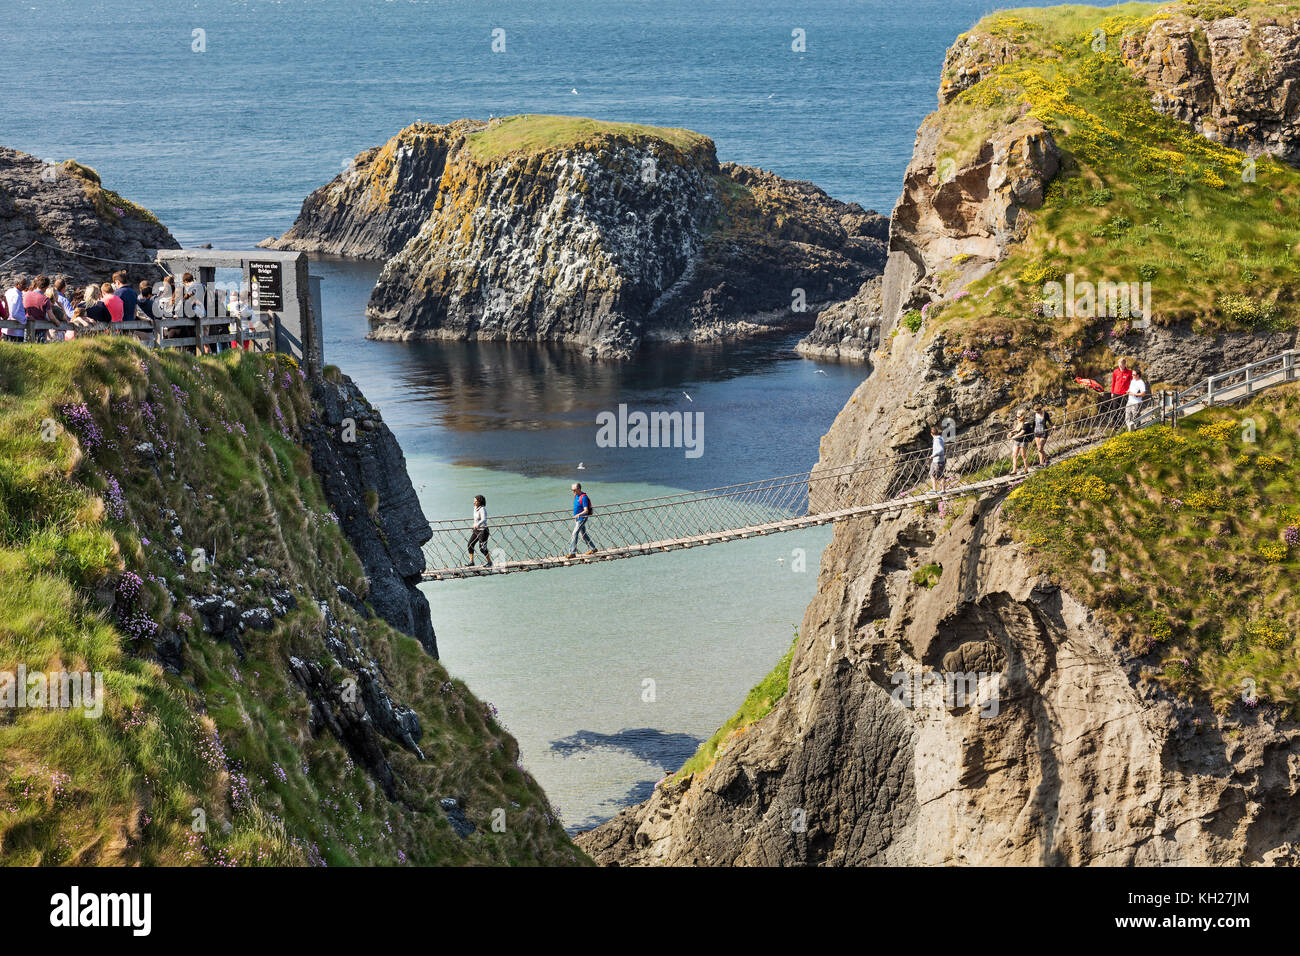 Thousands of tourists visiting Carrick-a-Rede Rope Bridge in County Antrim of Northern Ireland, hanging 30m above - Stock Image